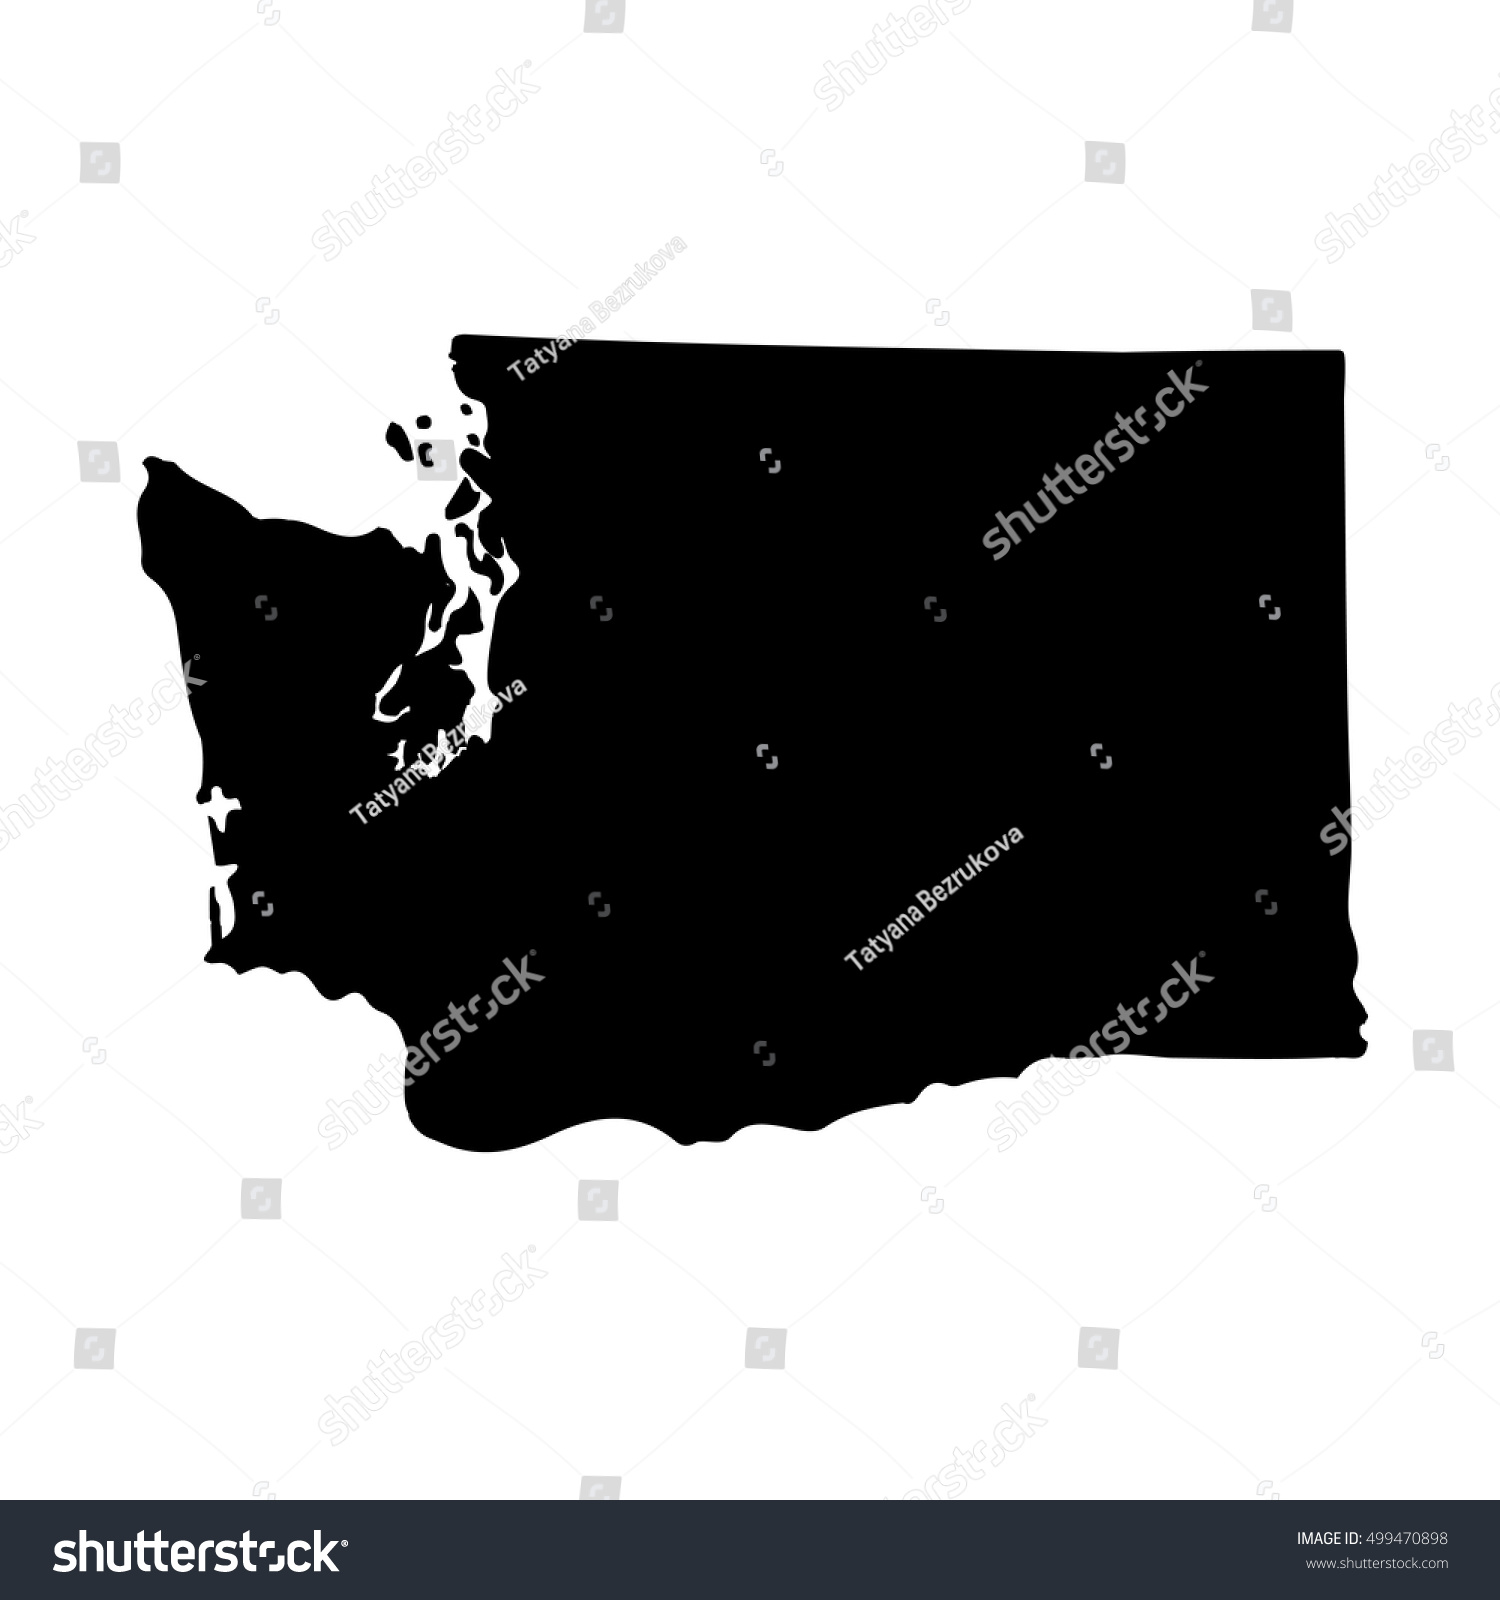 Map Of The U S State Of Washington On A White Background